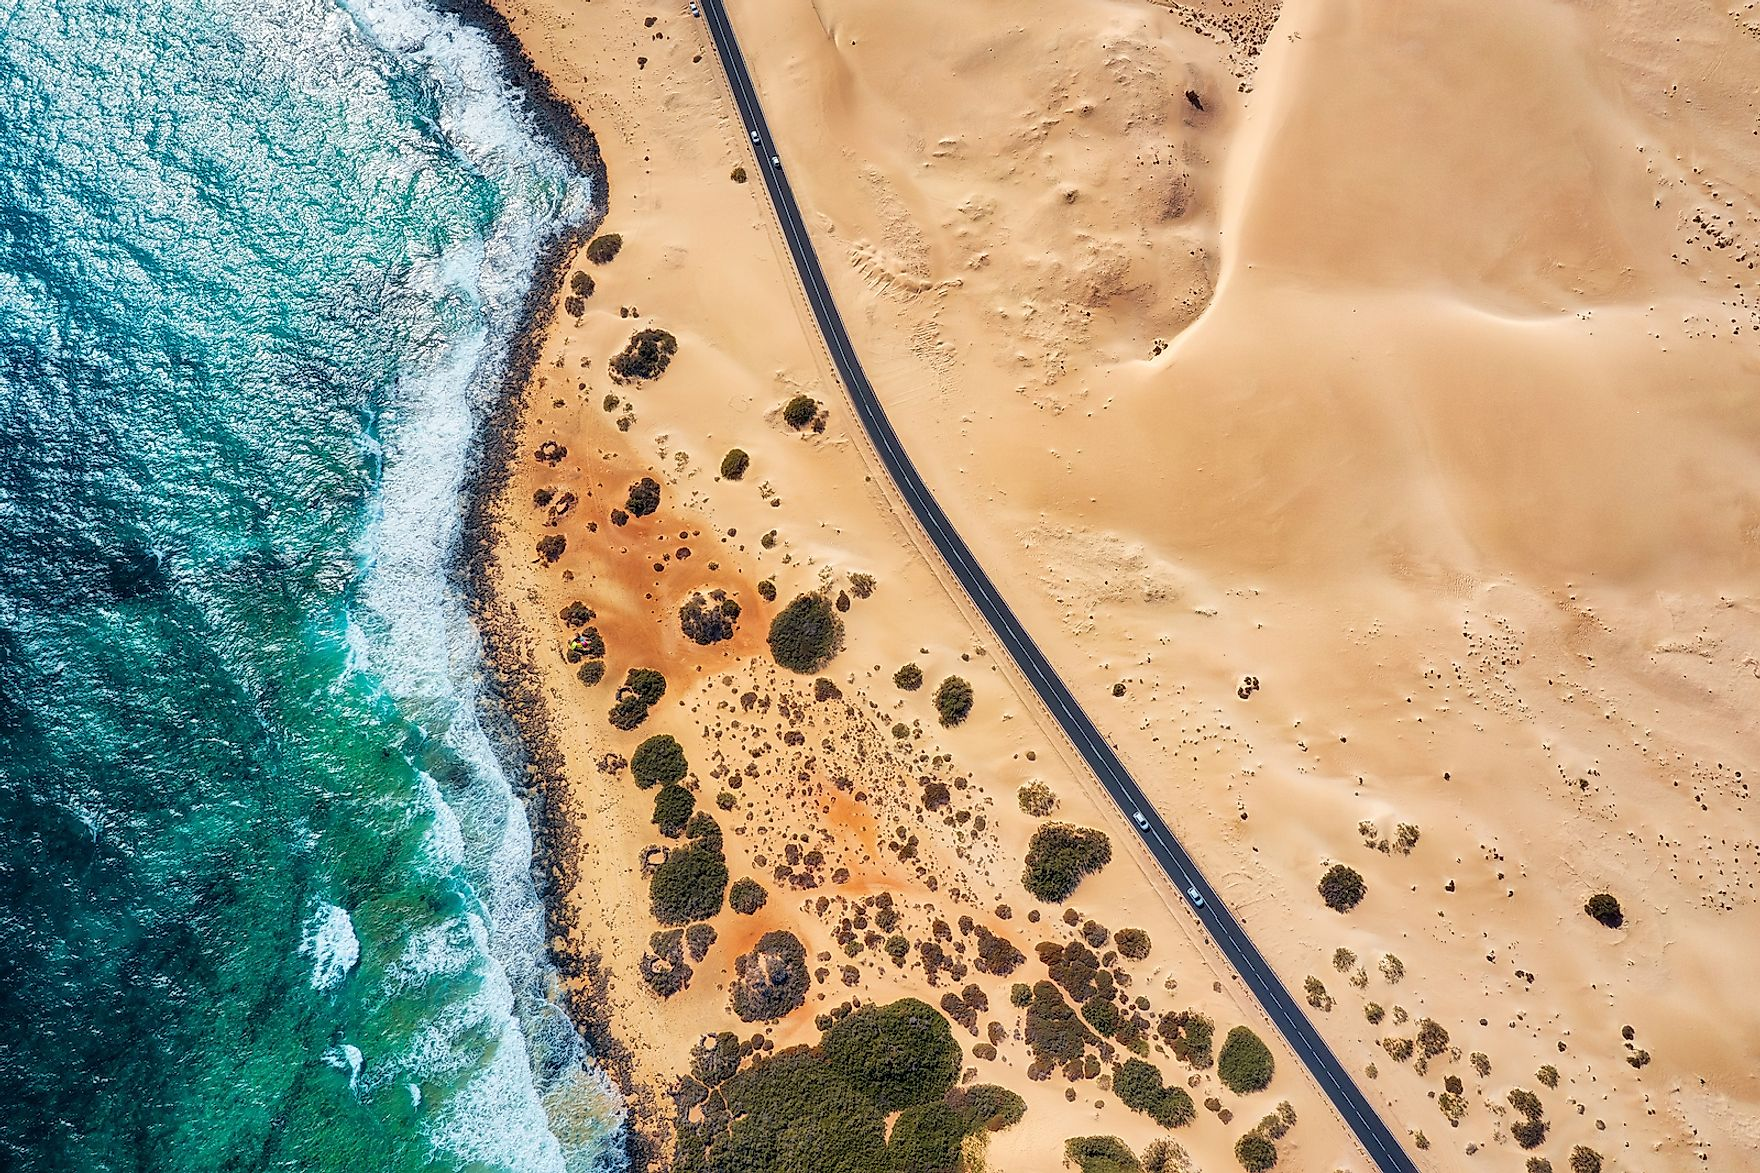 A highway running through the coastal Namib Desert. Image credit: Lukas Bischoff Photograph/Shutterstock.com